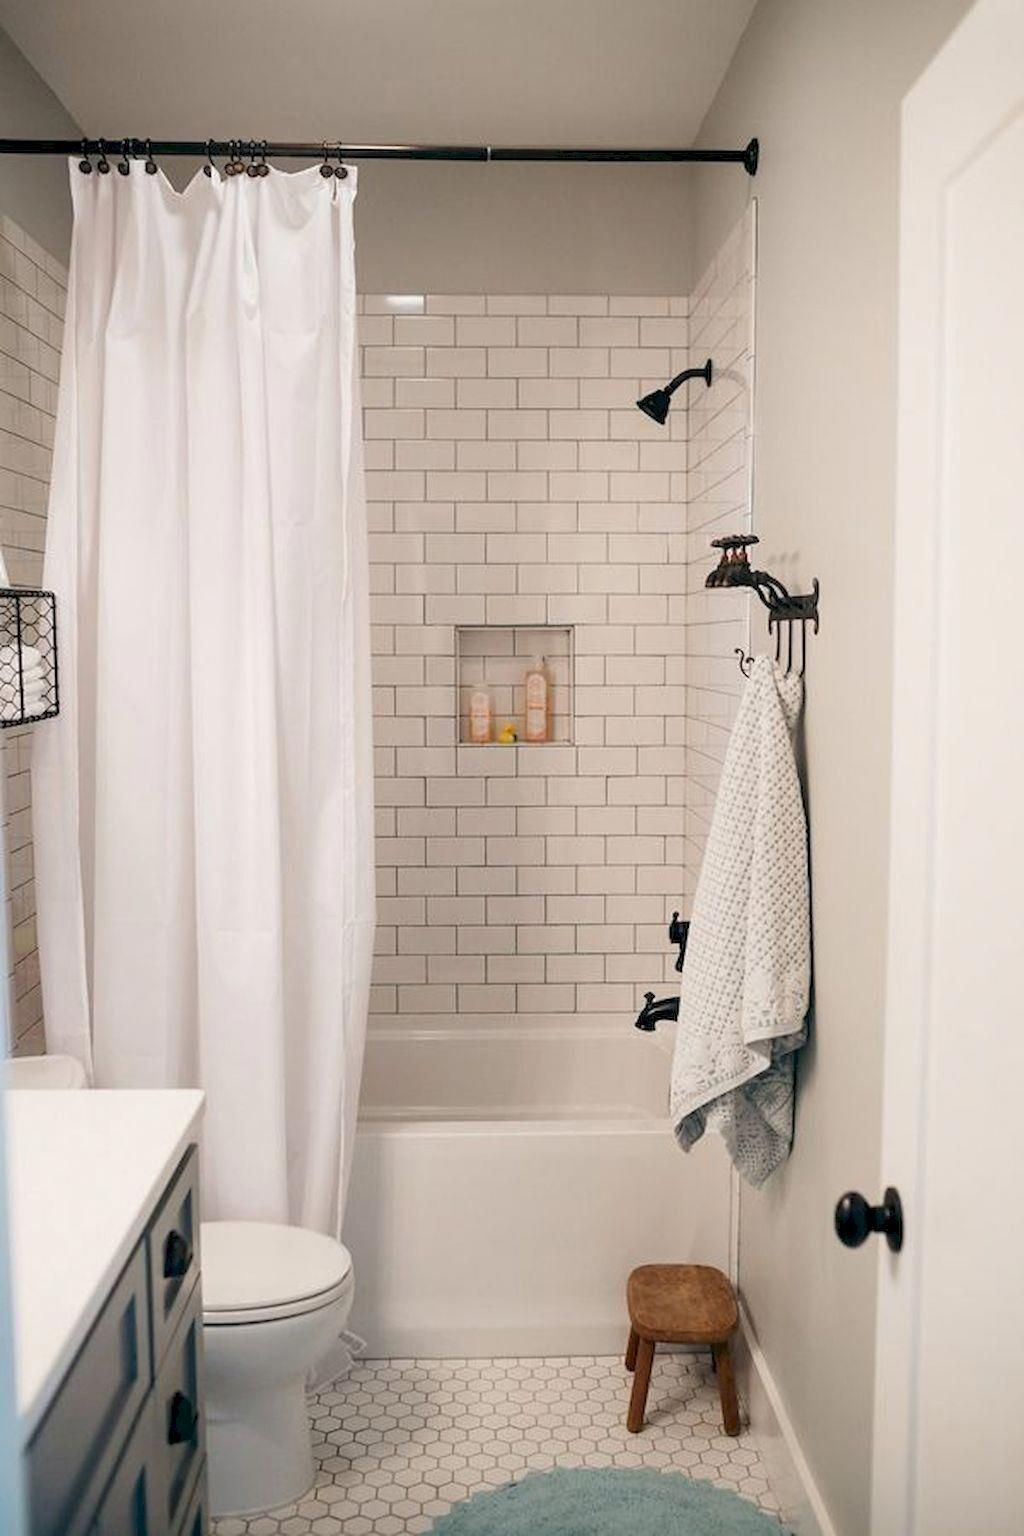 Numerous Fixtures May Be Brought Back With A New Look With Somewhat Some Time To Swe Guest Bathroom Remodel Bathroom Remodel Master Bathrooms Remodel